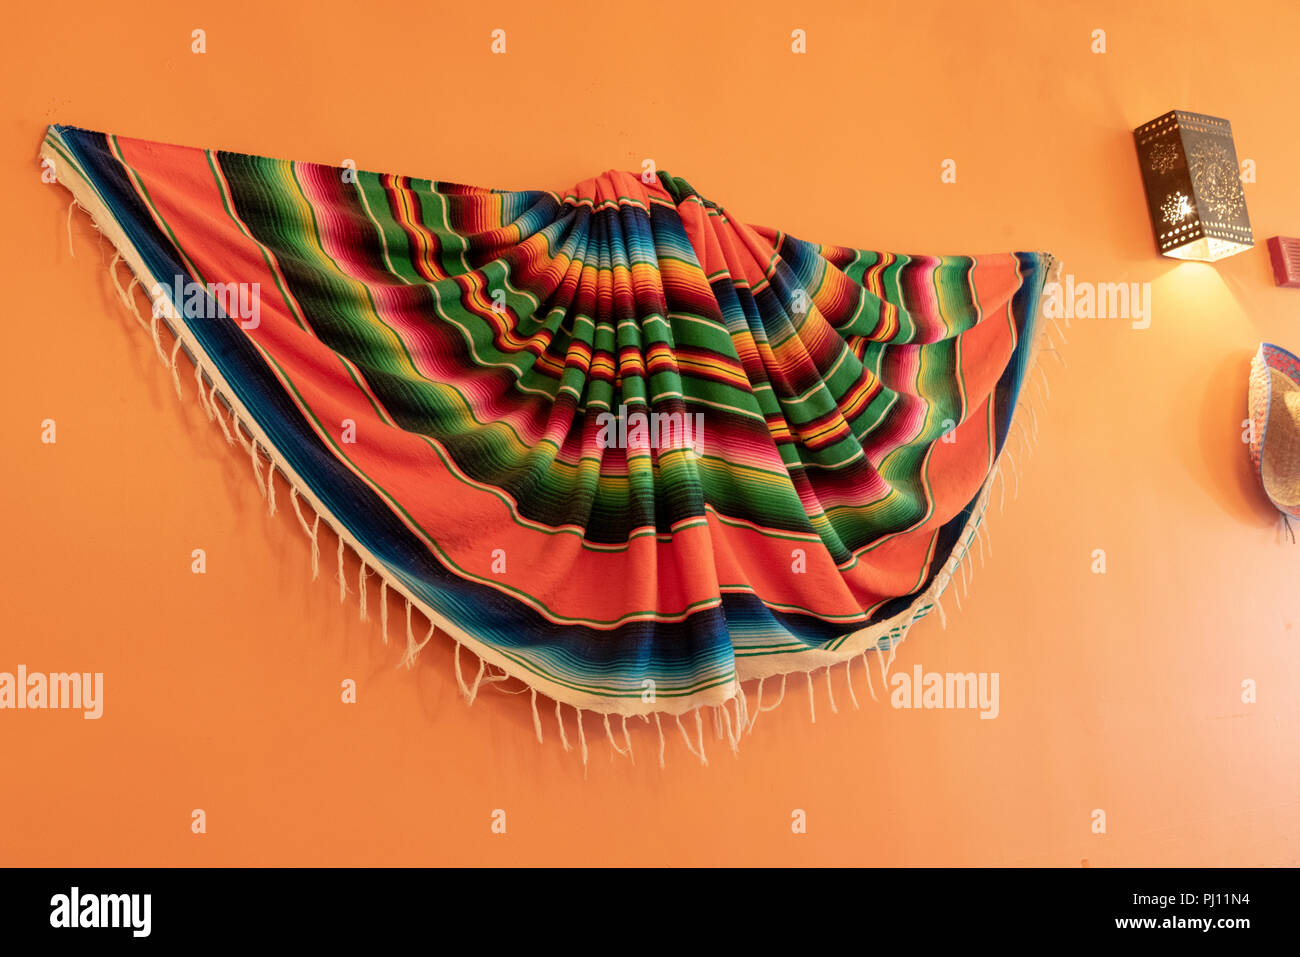 Multicolored poncho hanging on orange wall next to light. - Stock Image